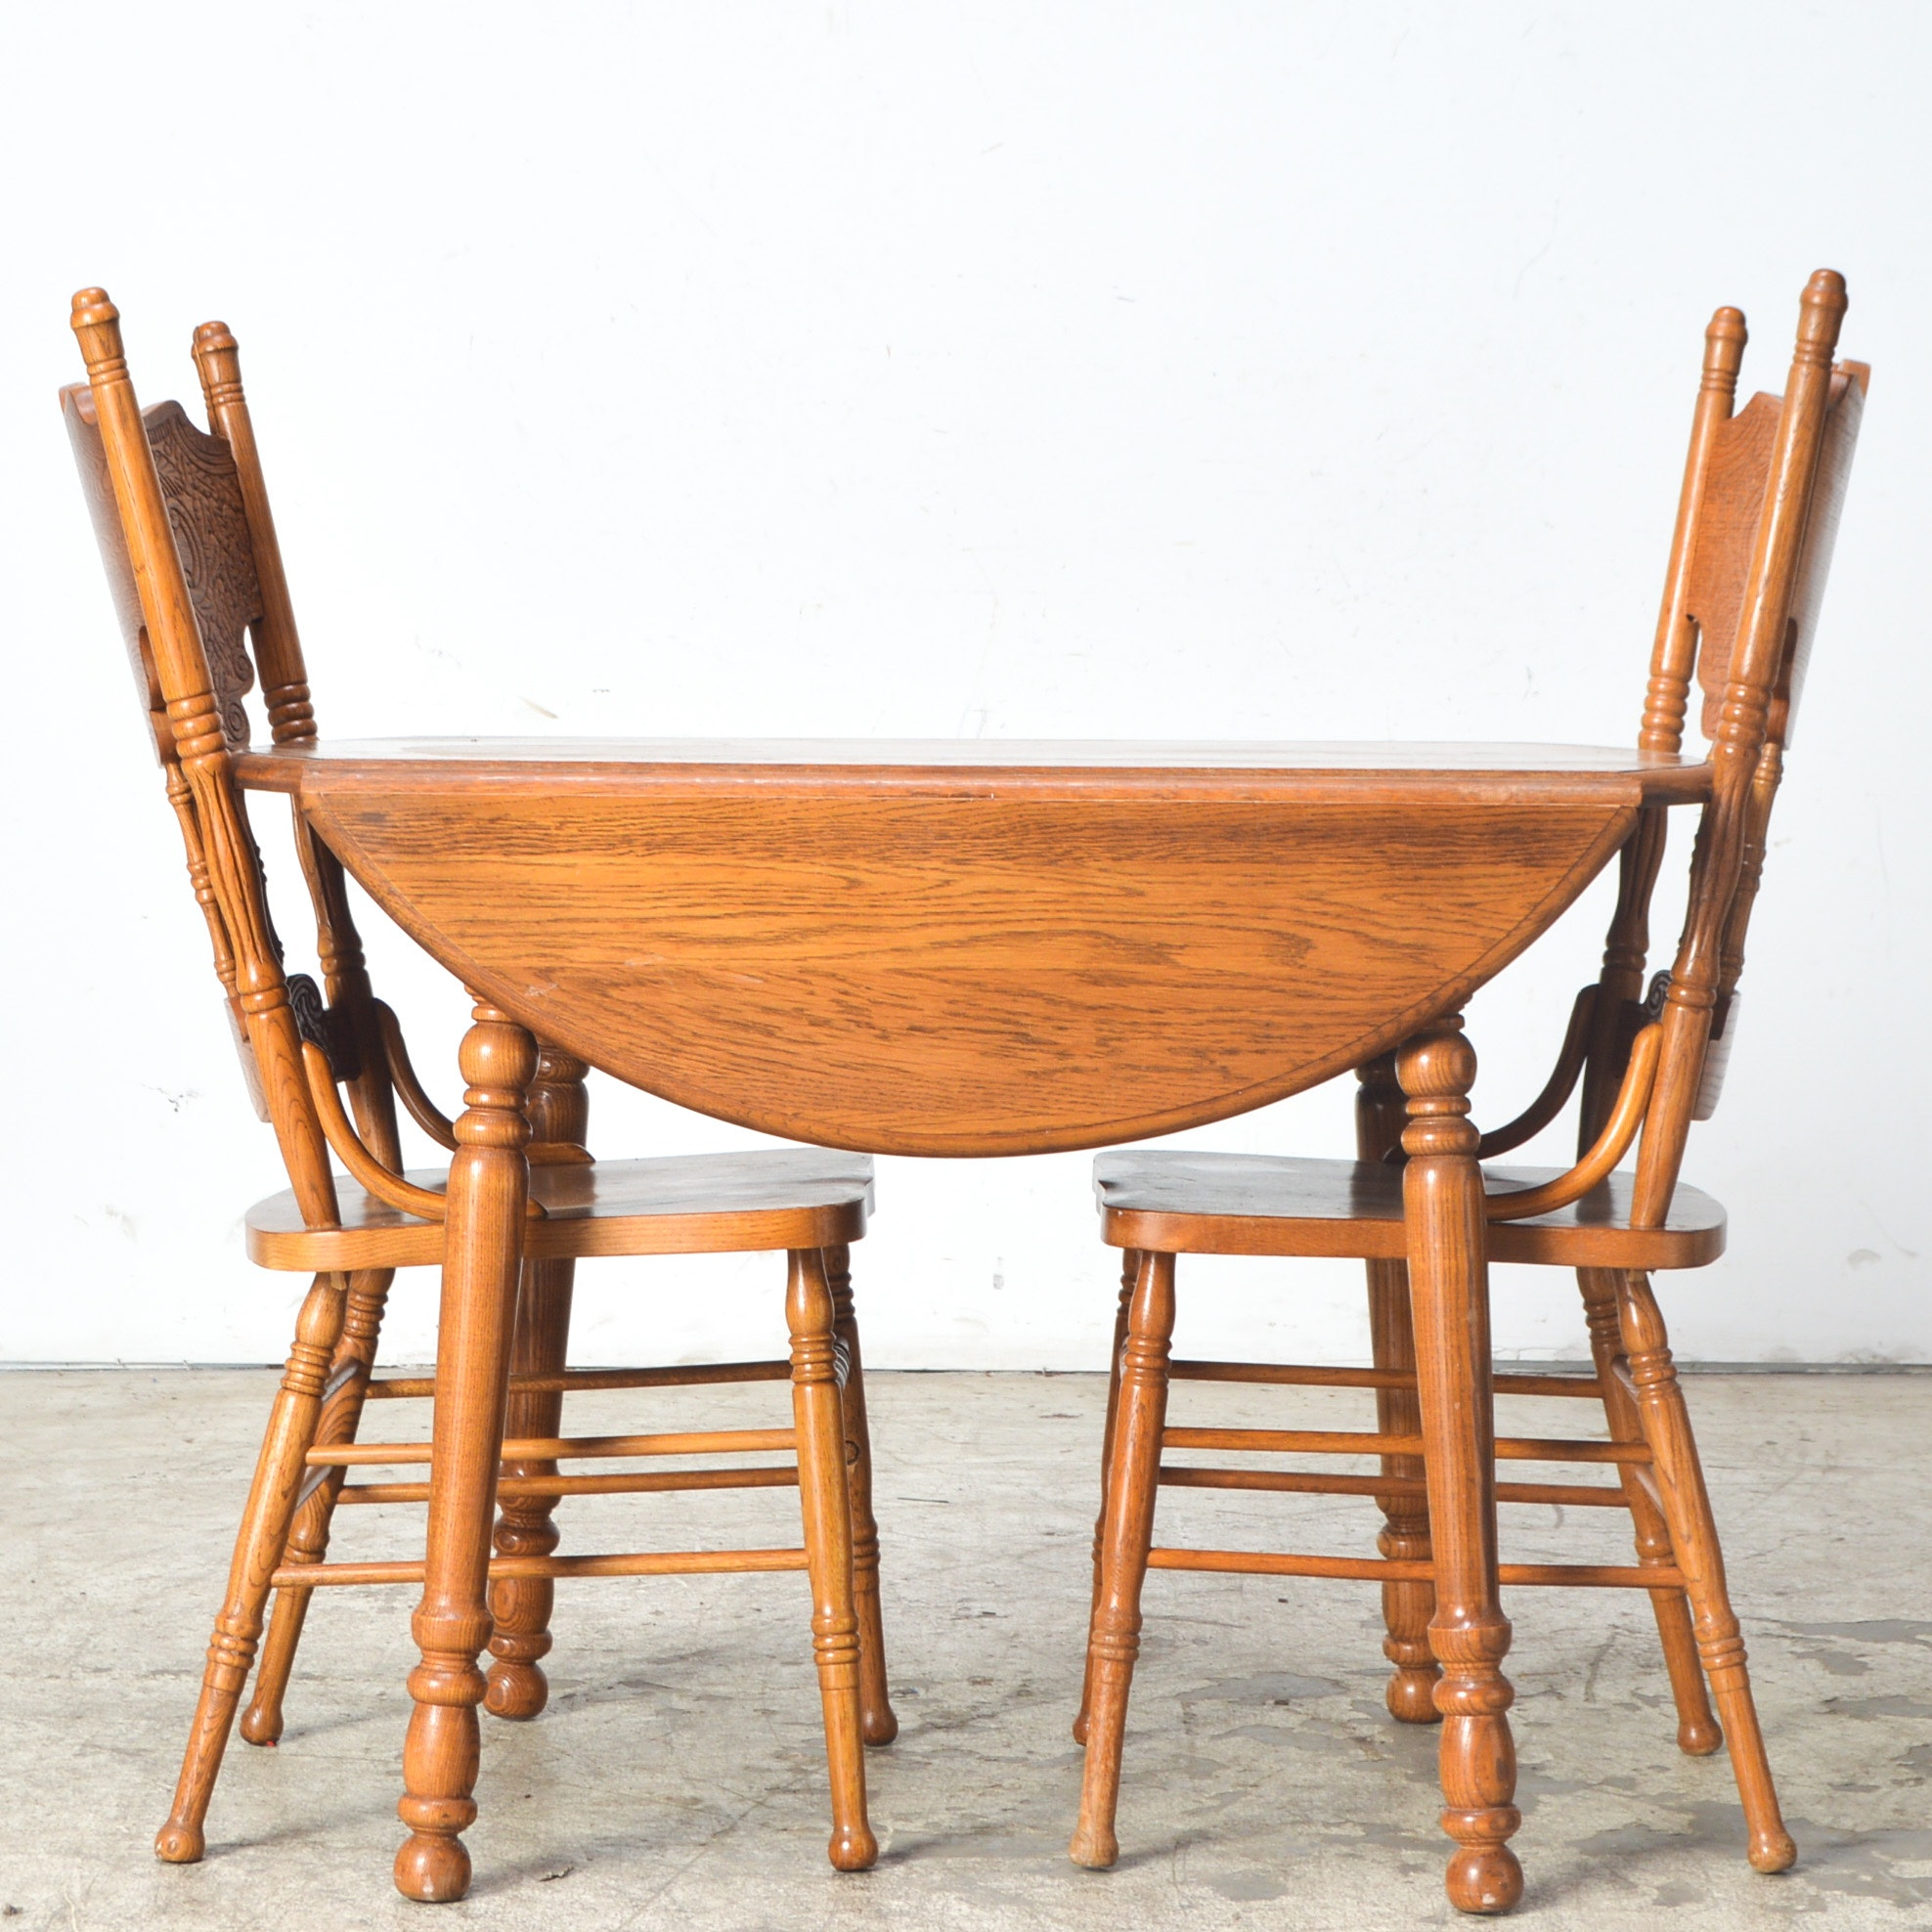 Vintage Oak Drop Leaf Table with Two Chairs